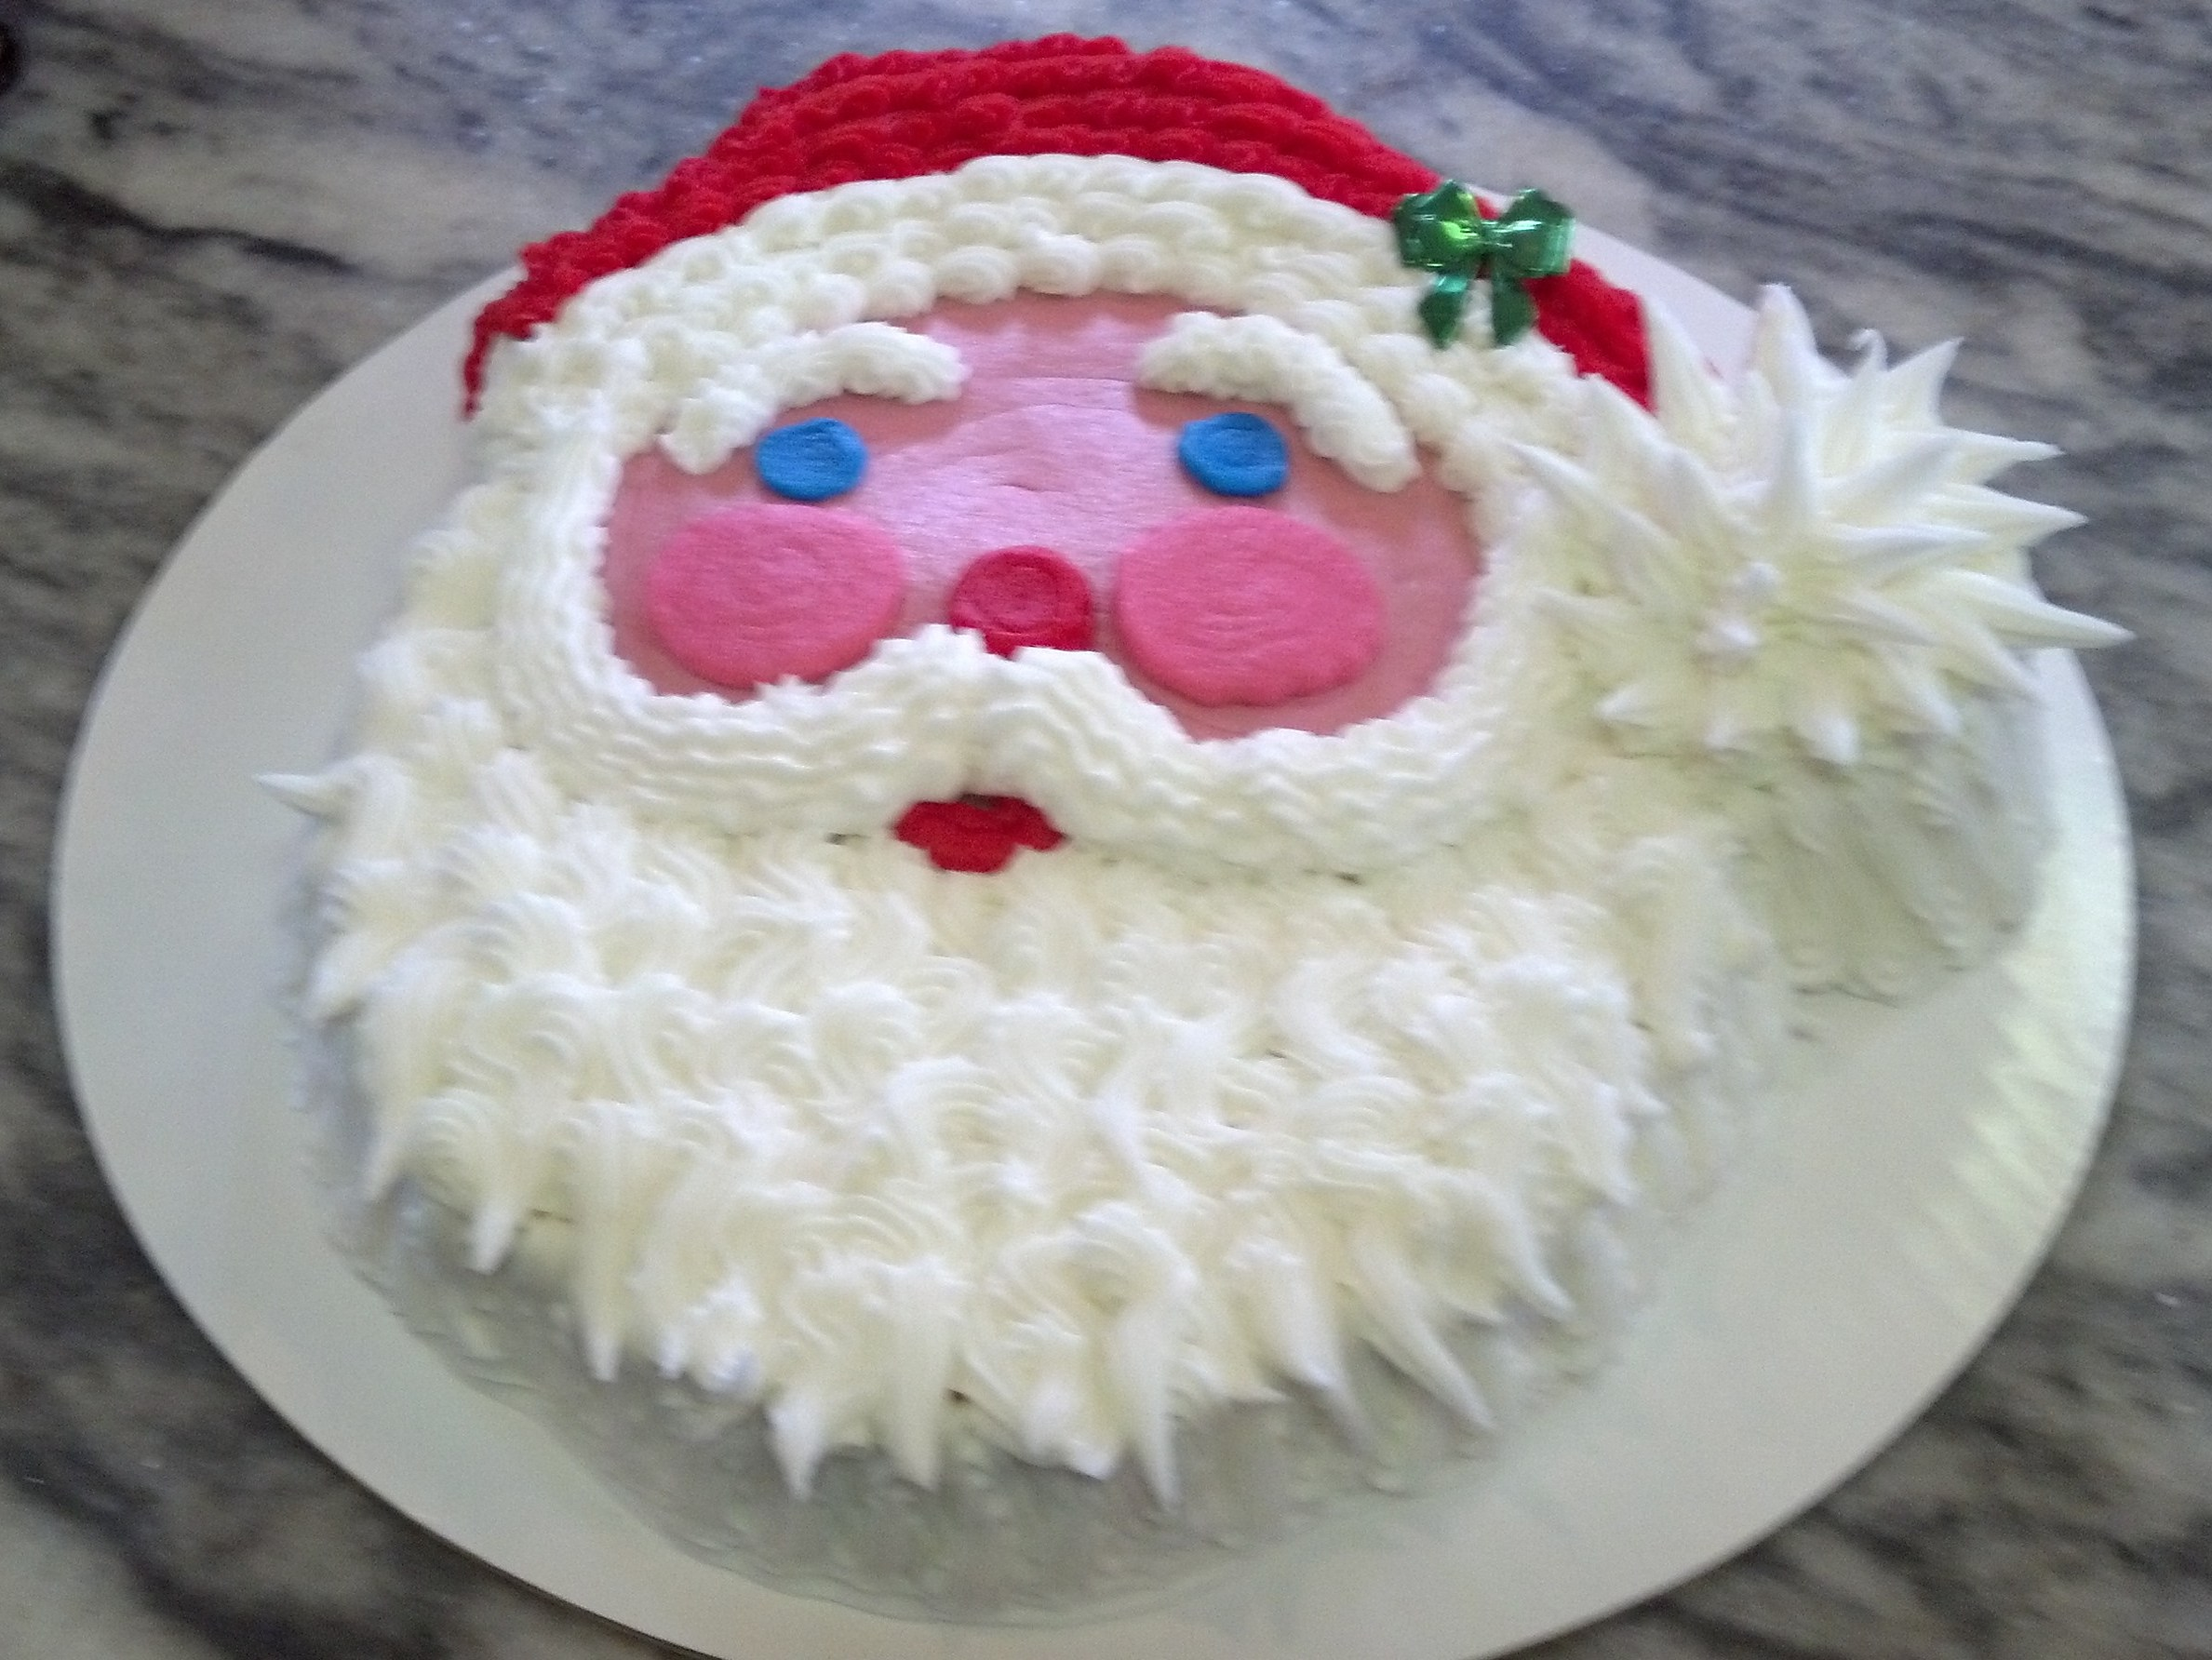 Community Bakery | Gallery – Seasonal Cakes